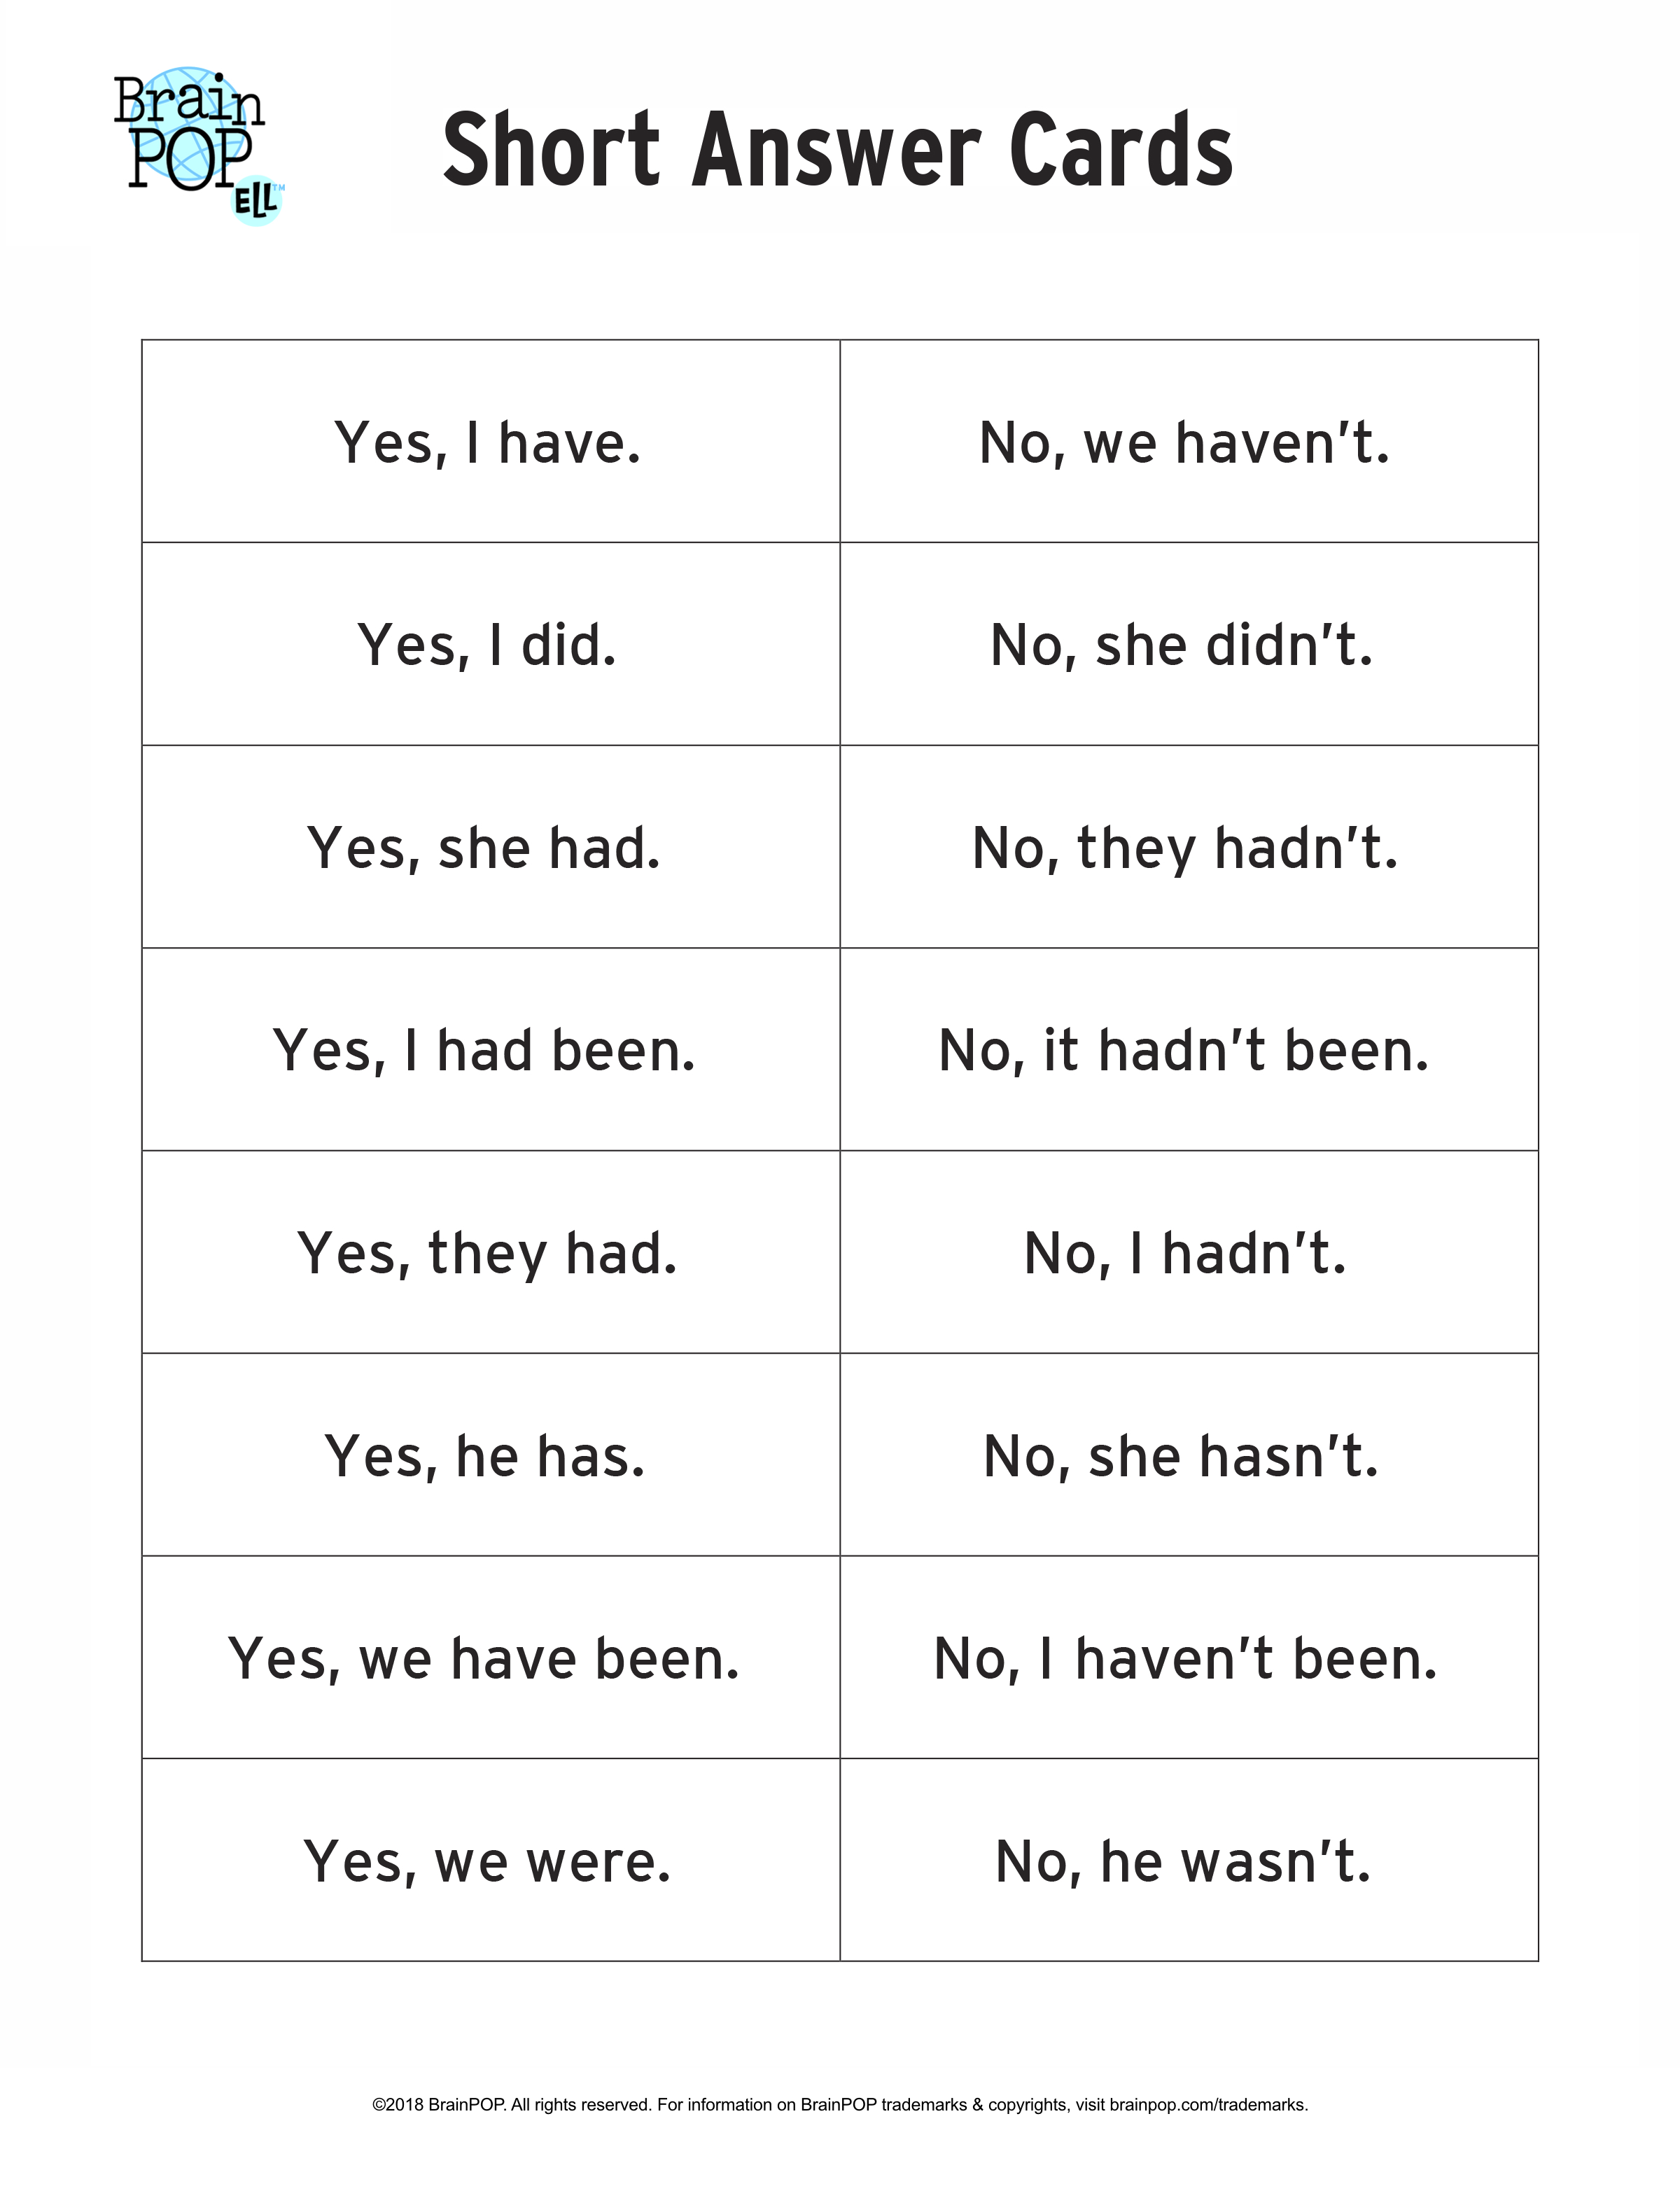 Past Tense Short Answer Cards